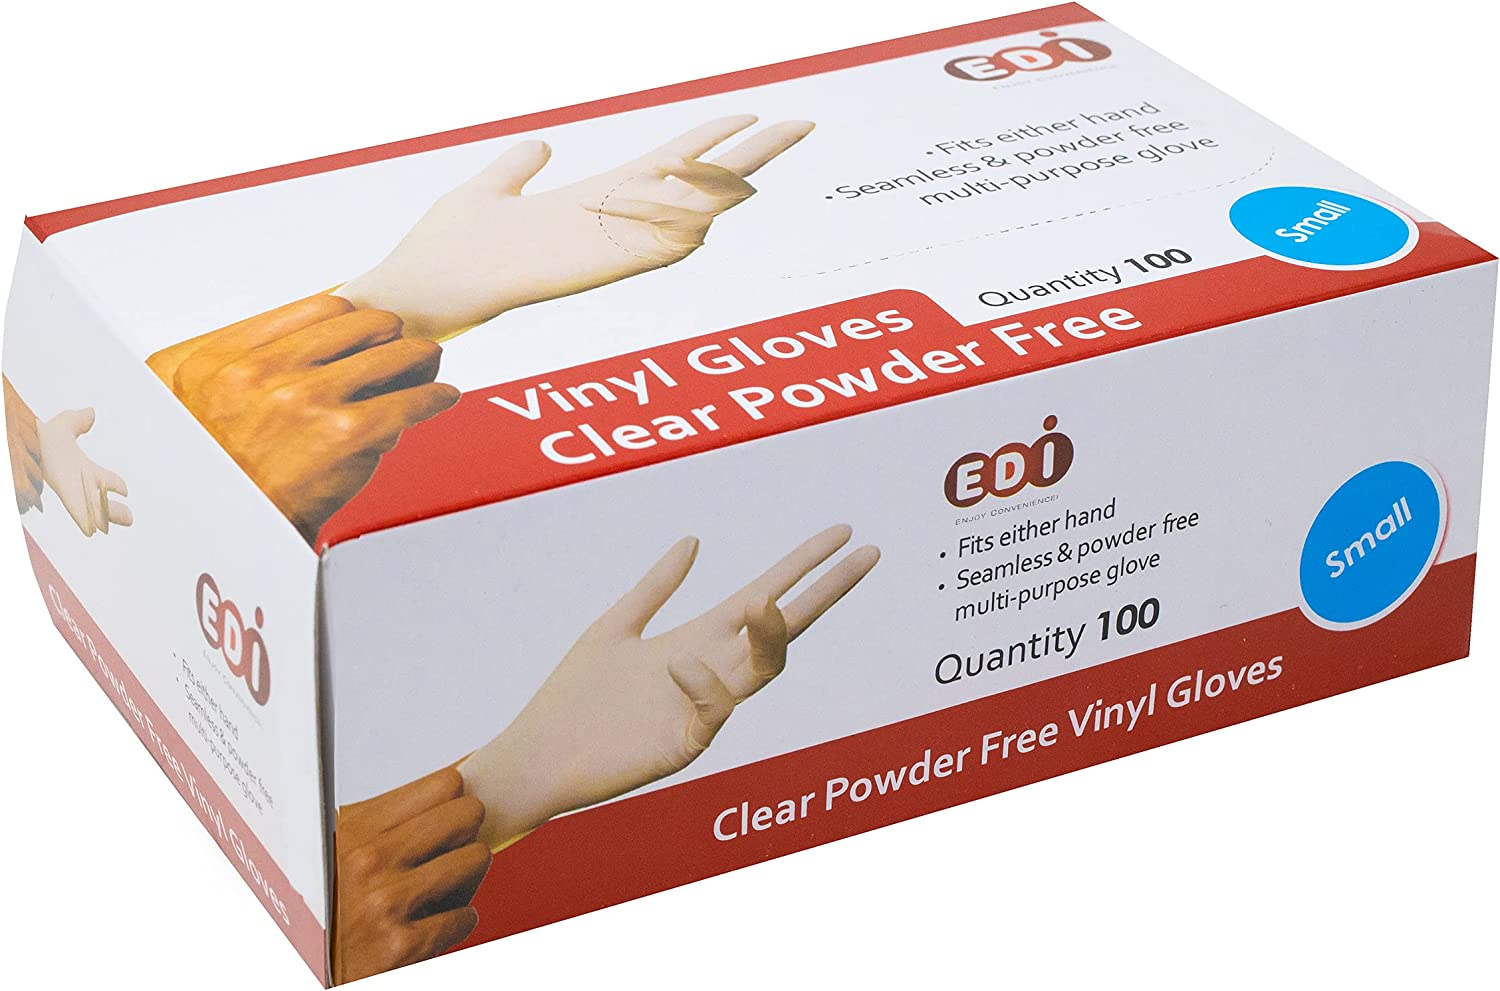 EDI Disposable Vinyl Gloves Courier shipping 2021 new free Clear Latex-Free - Powder-Free